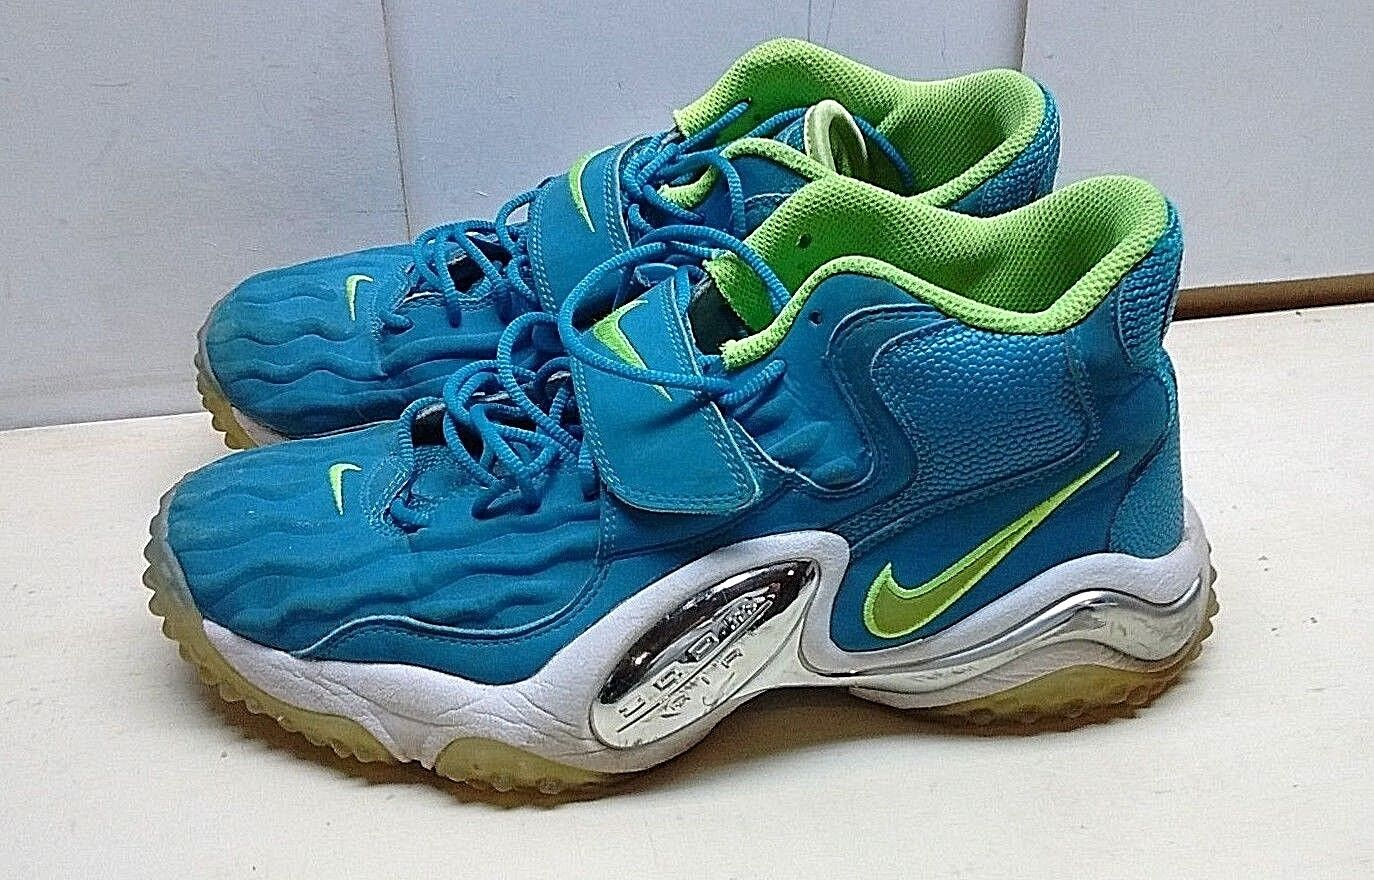 Nike Zoom Air Men Blue Green Synthetic Basket Sport Lace High Top Shoe Size 10 M